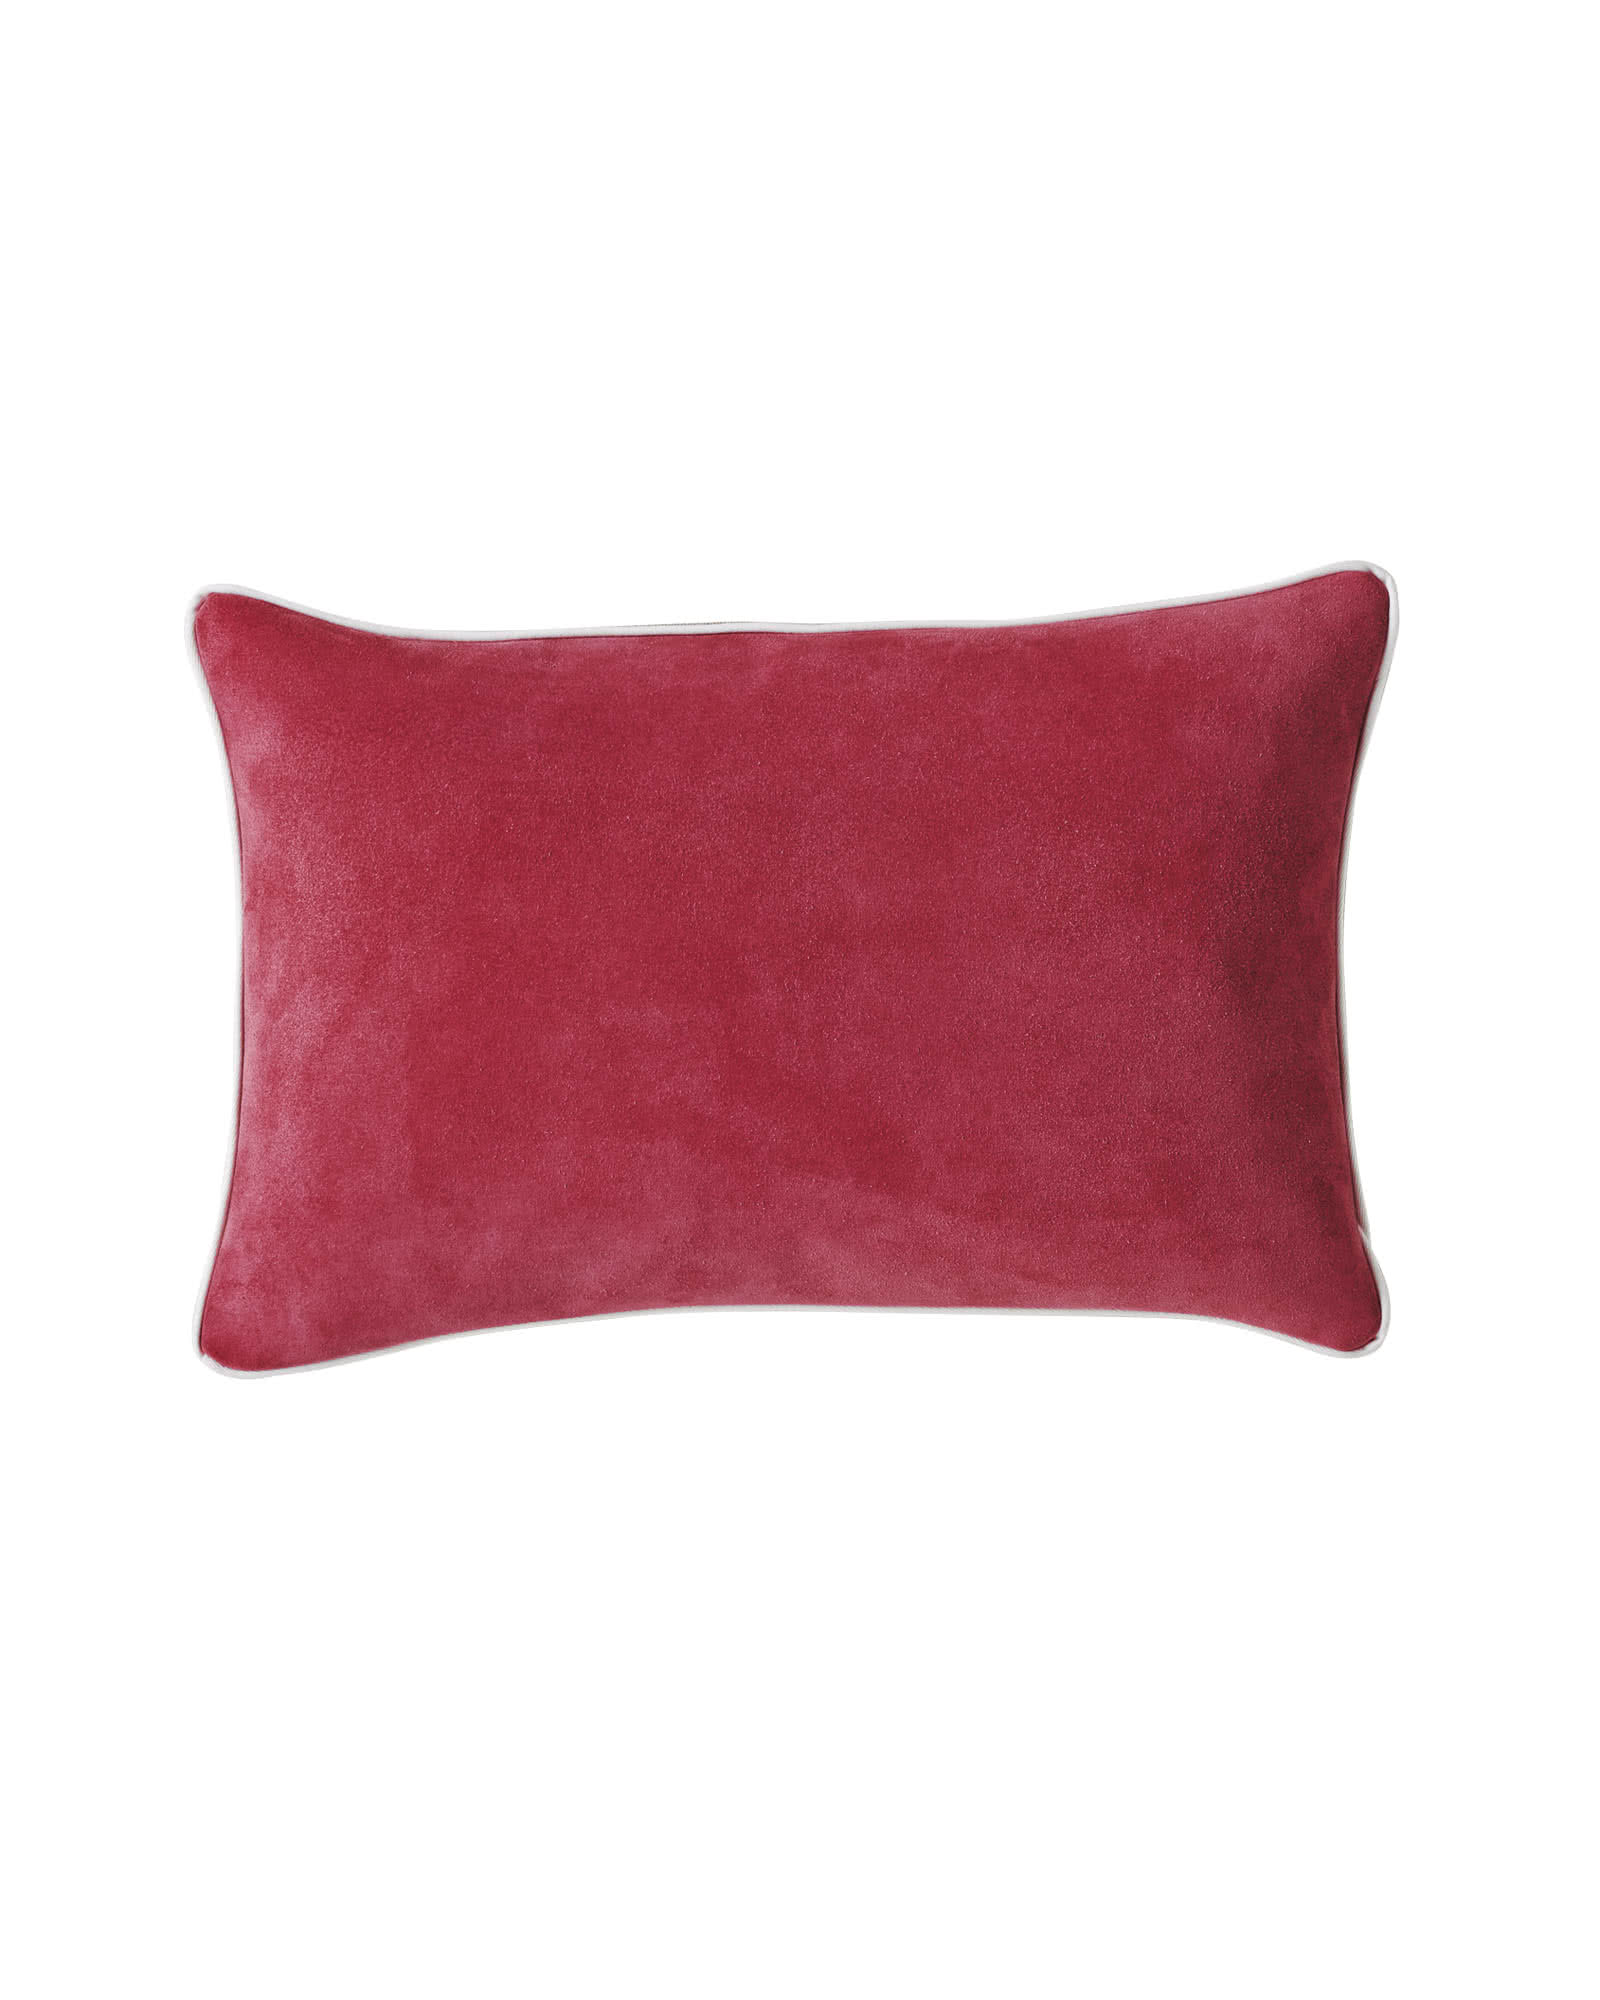 Suede Lumbar Pillow Cover